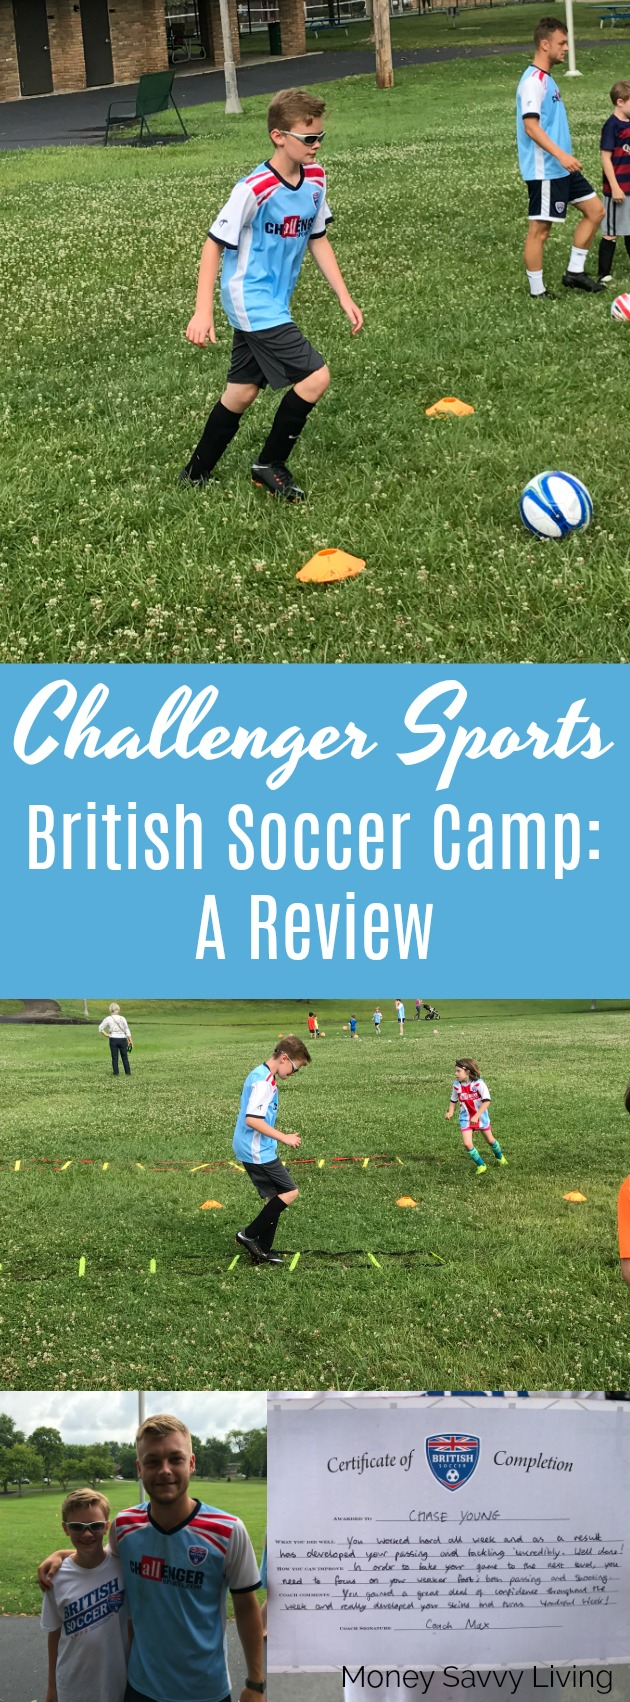 Challenger Sports British Soccer Camp: A Review // Money Savvy Living